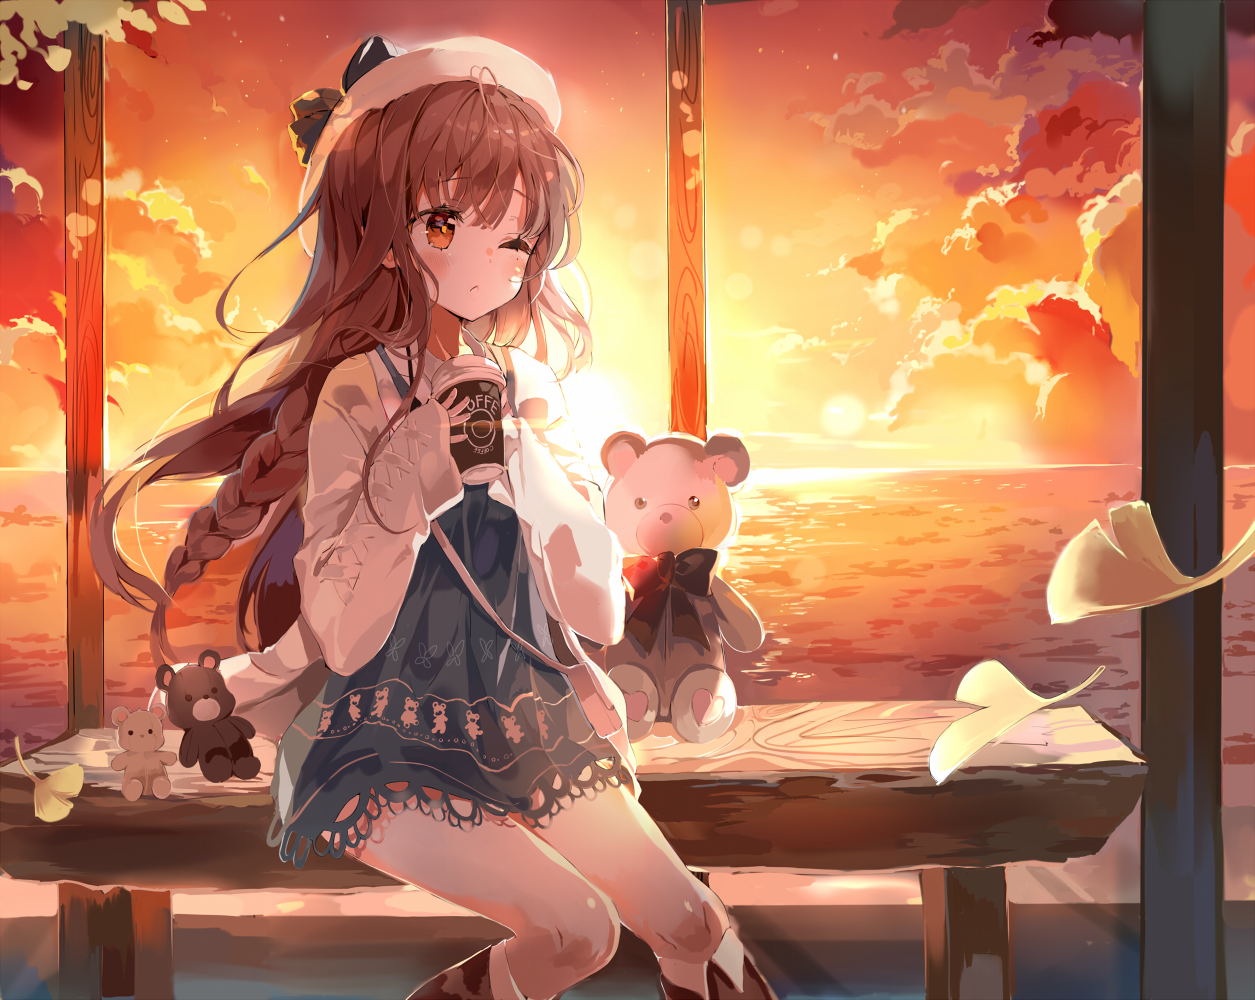 Drinking Coffee at the Sunset [Original] : animehotbeverages